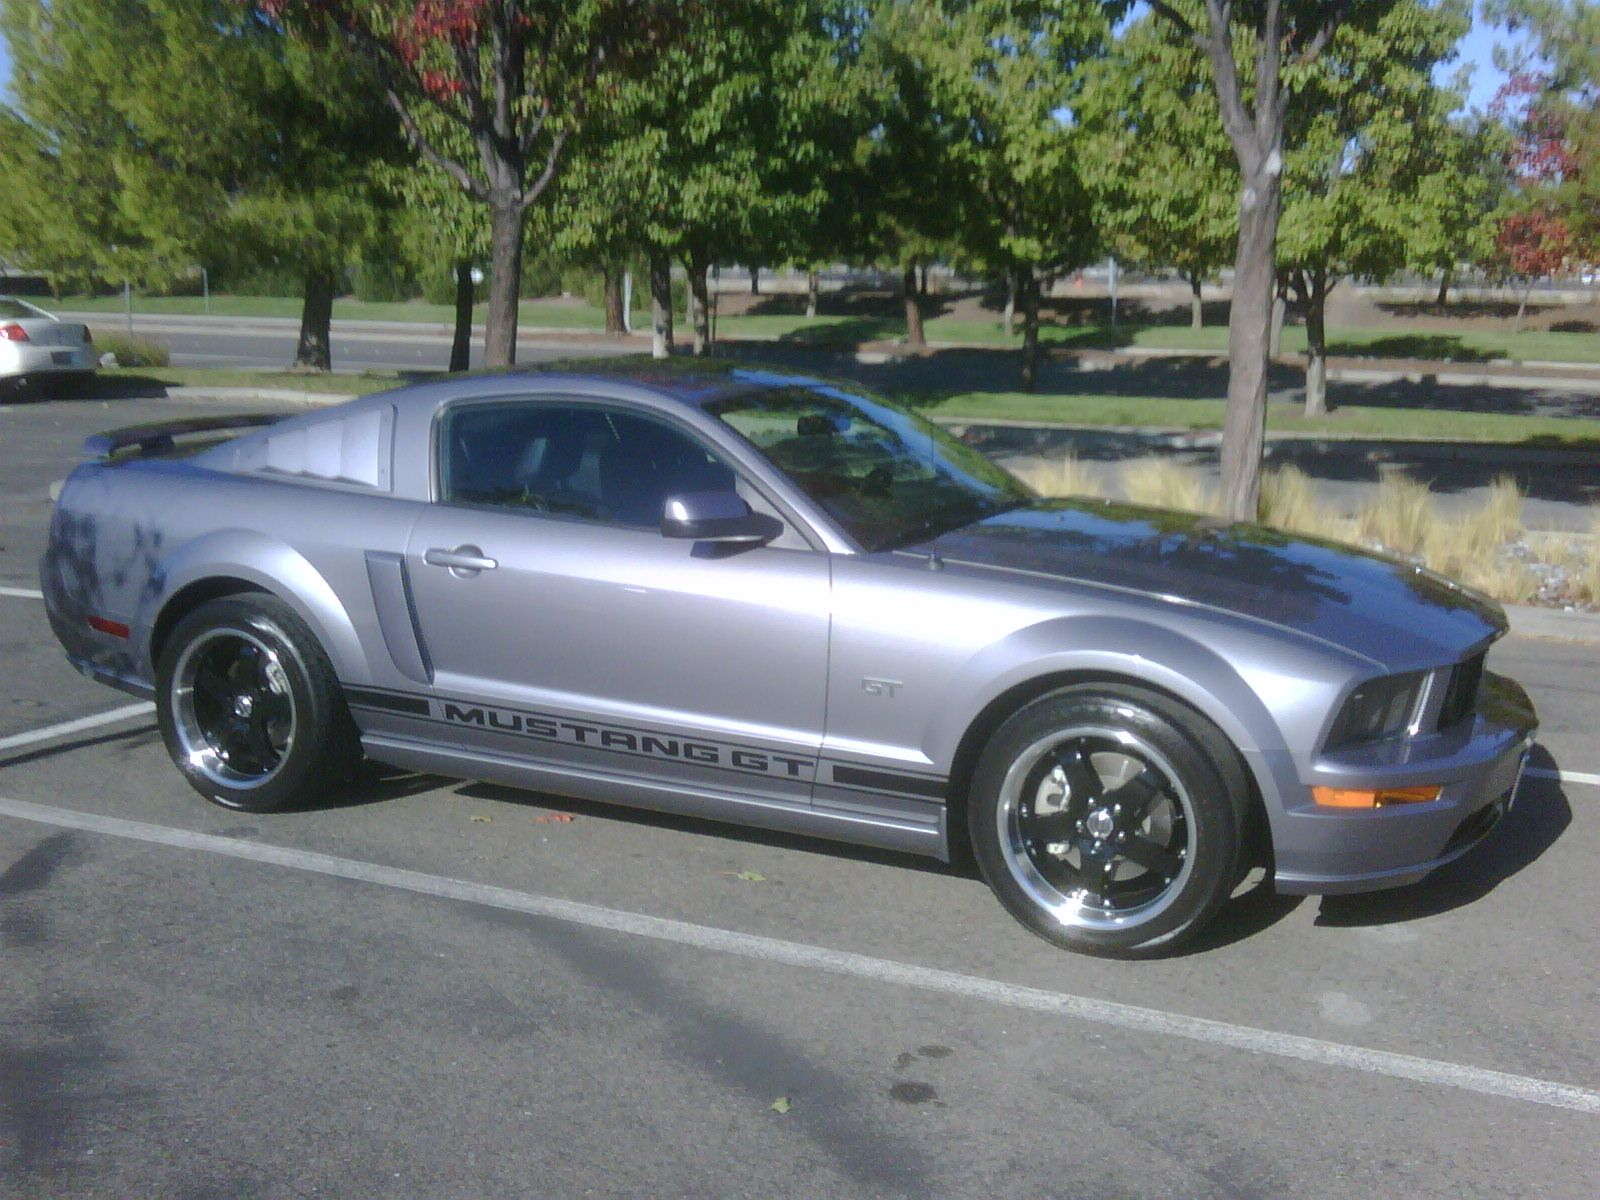 My 2006 Mustang Gt Ford Mustang Shelby Cobra 2006 Mustang Gt Mustang Gt